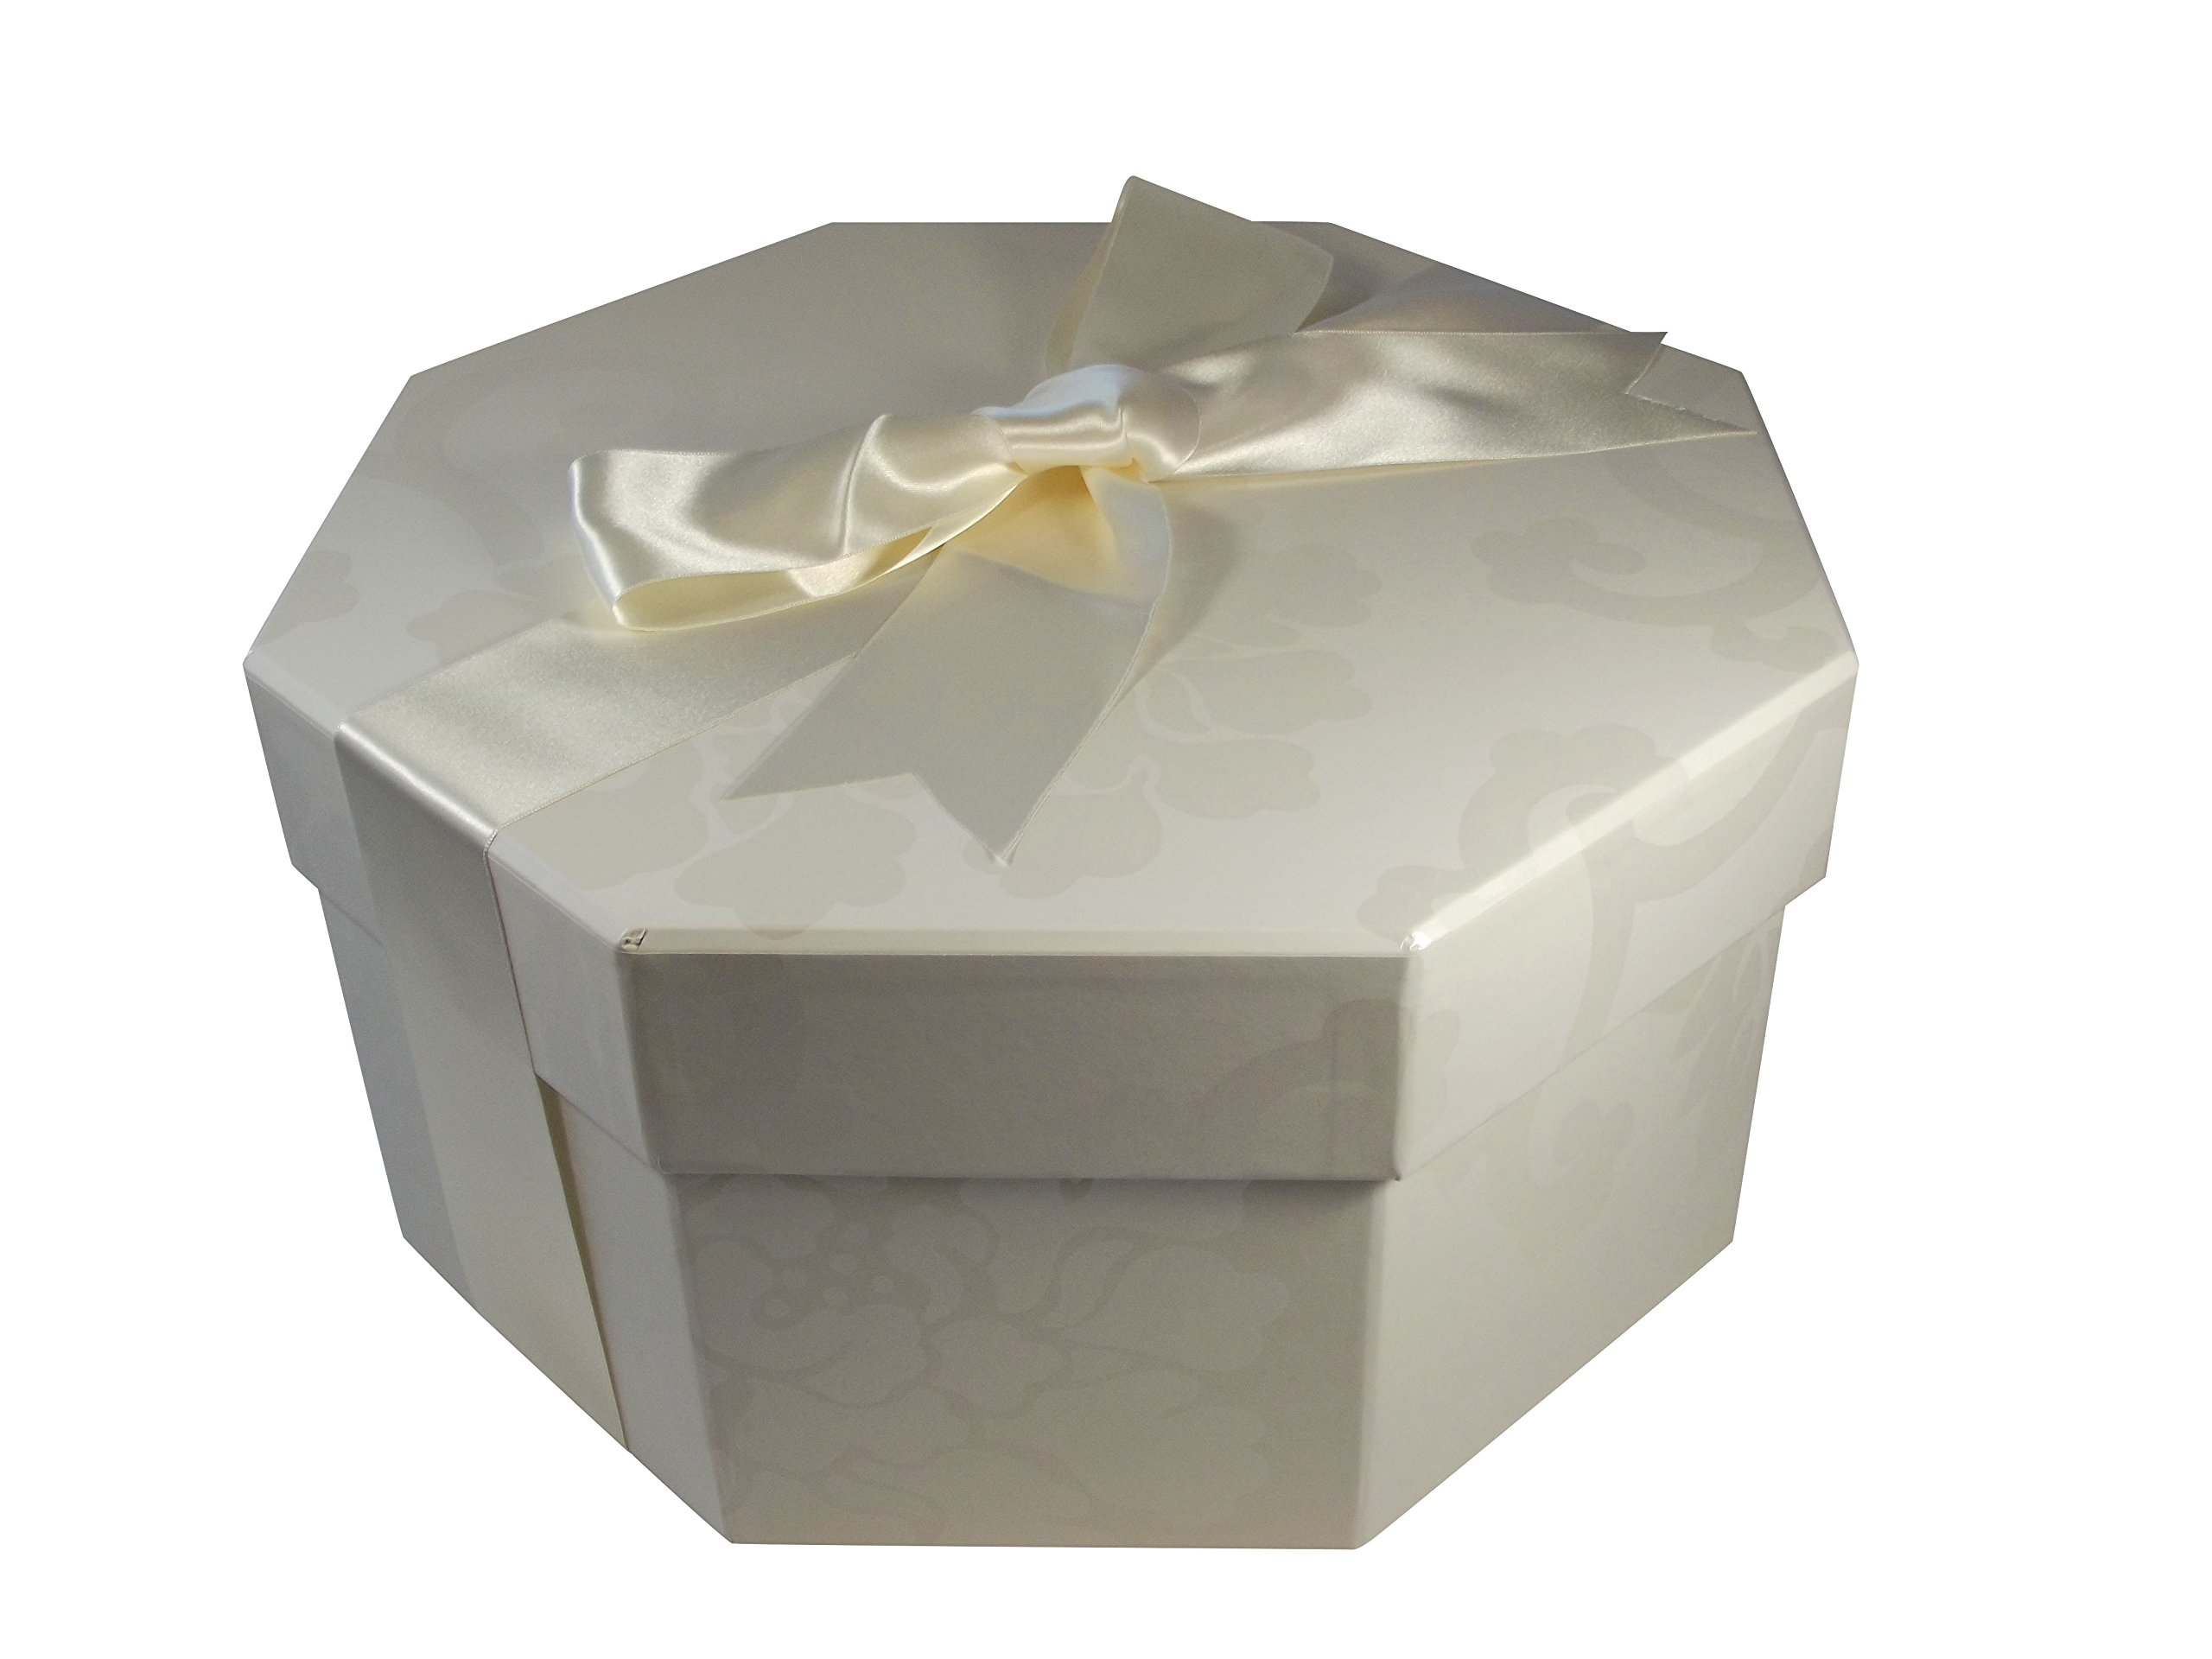 Foster-Stephens, inc Colorful Hat Box - Endsleigh Ivory (Large: 20.08'' Diameter x 8.27'') by Foster-Stephens, inc